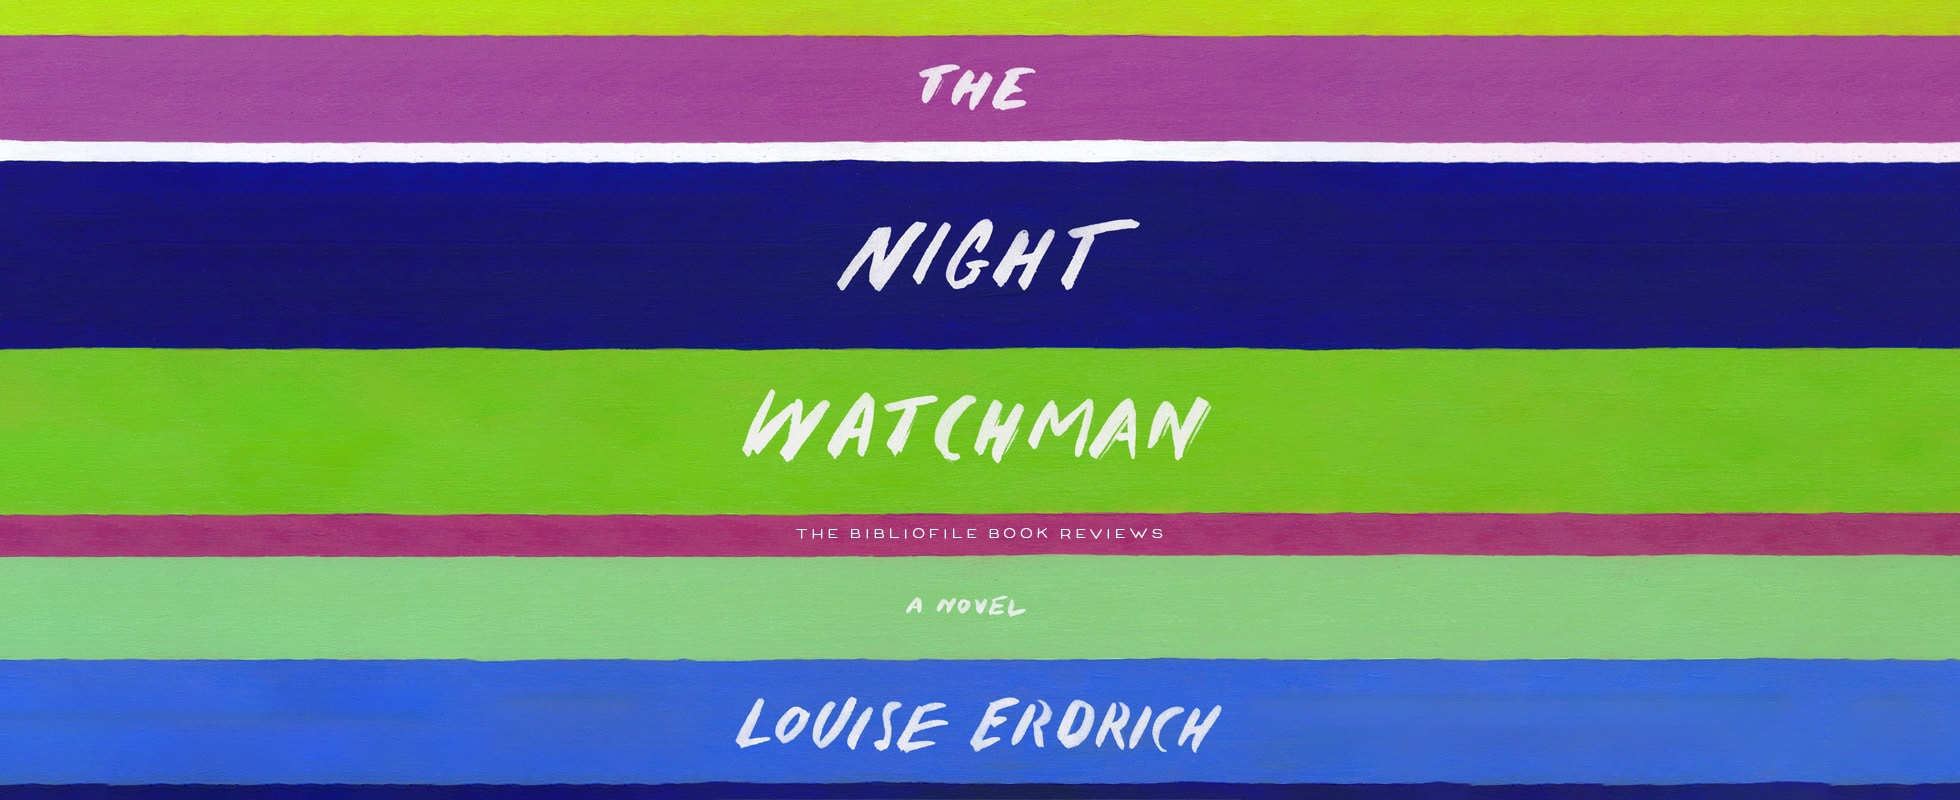 the night watchman by louise erdrich summary and book review synopsis recap